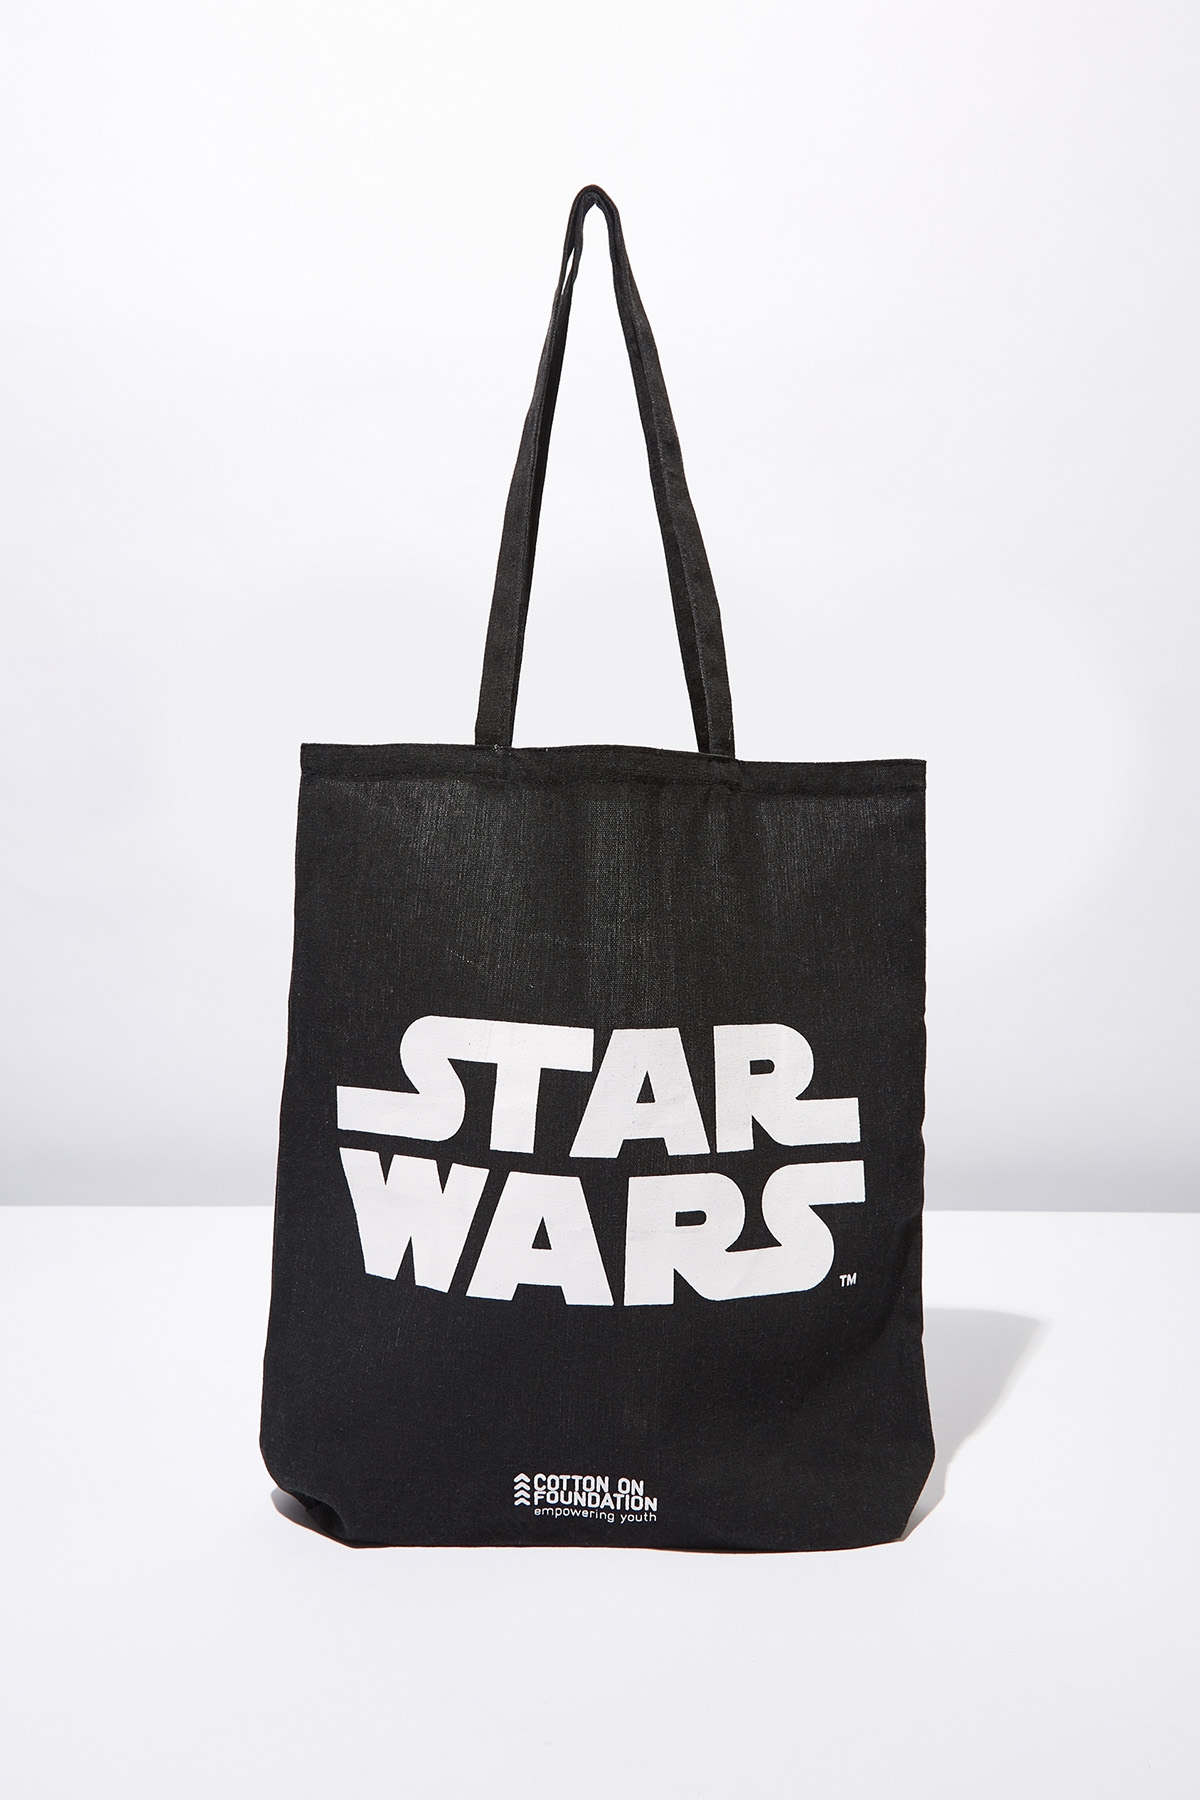 Star Wars Tote Bags At Cotton On Swnz New Zealand